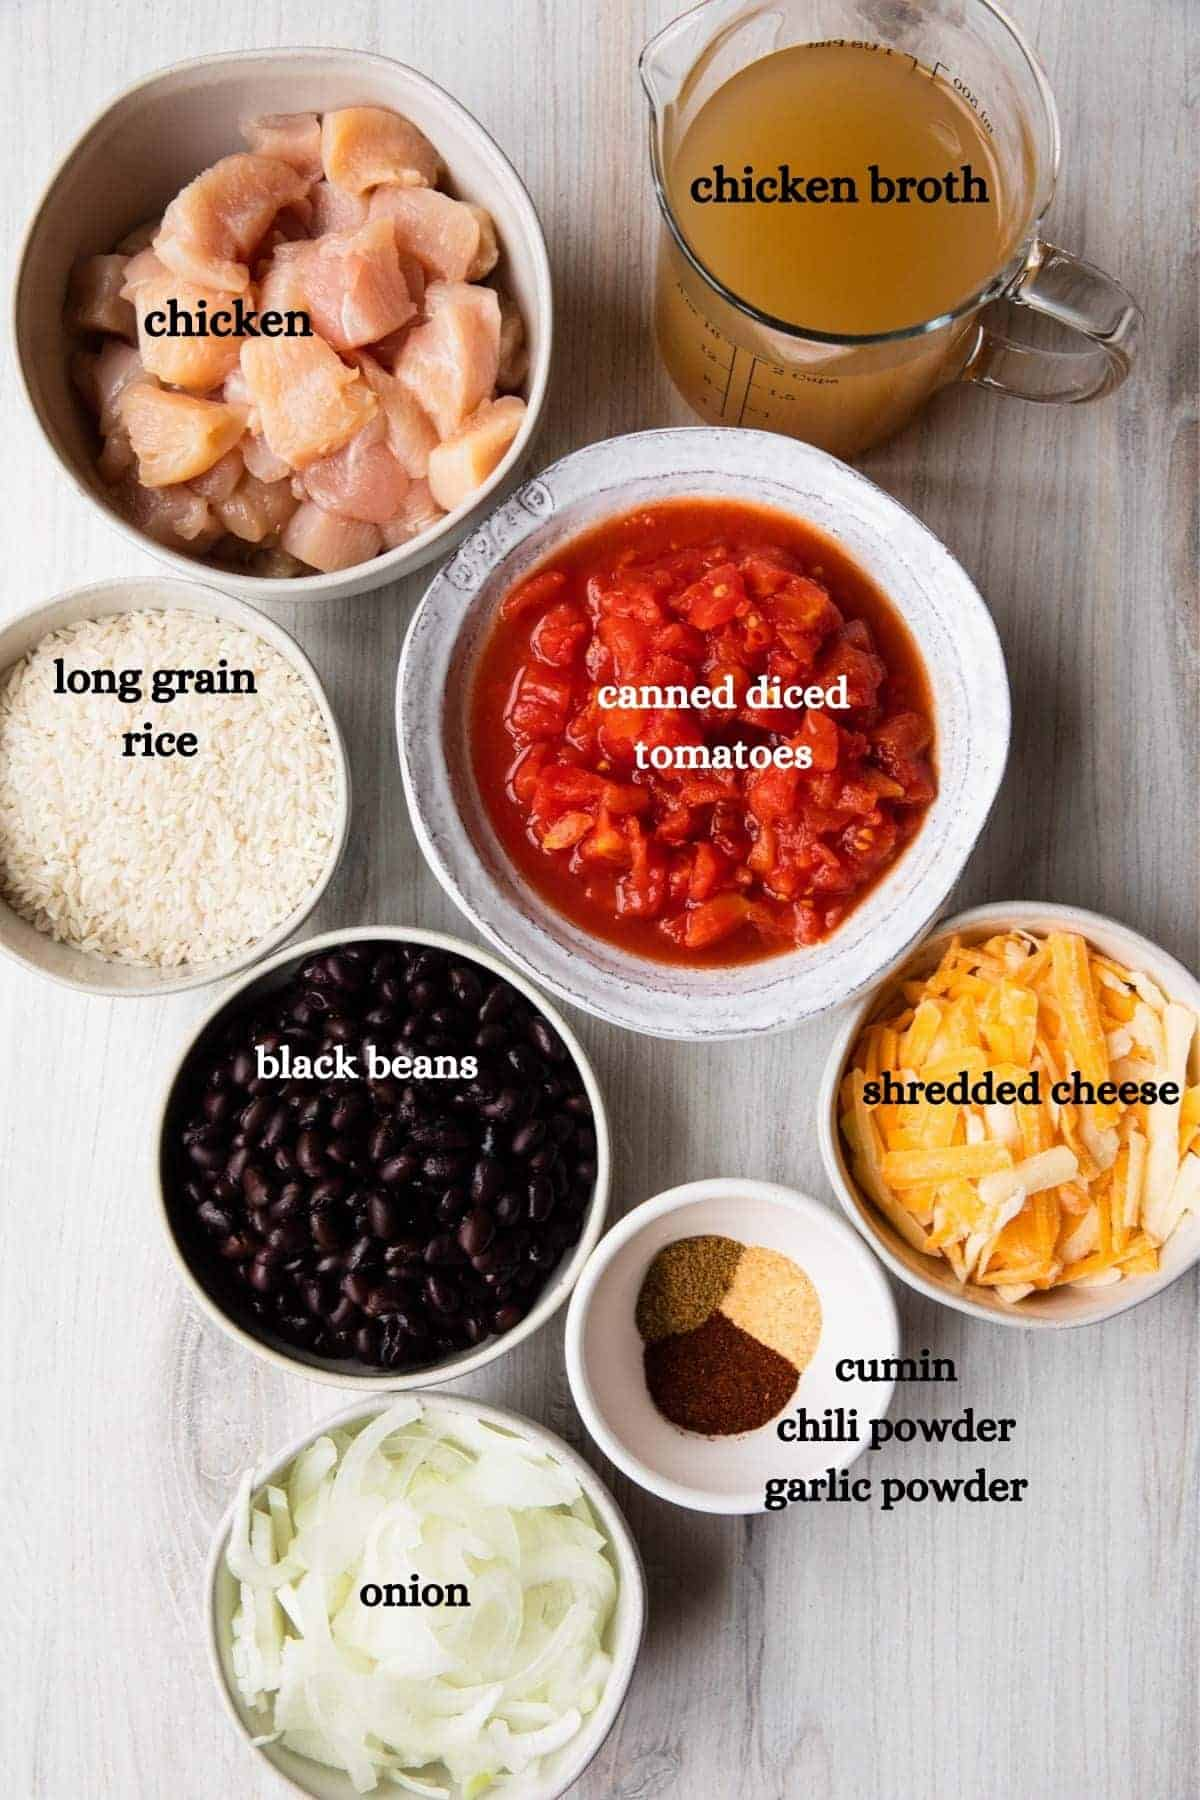 recipe ingredients with text lables